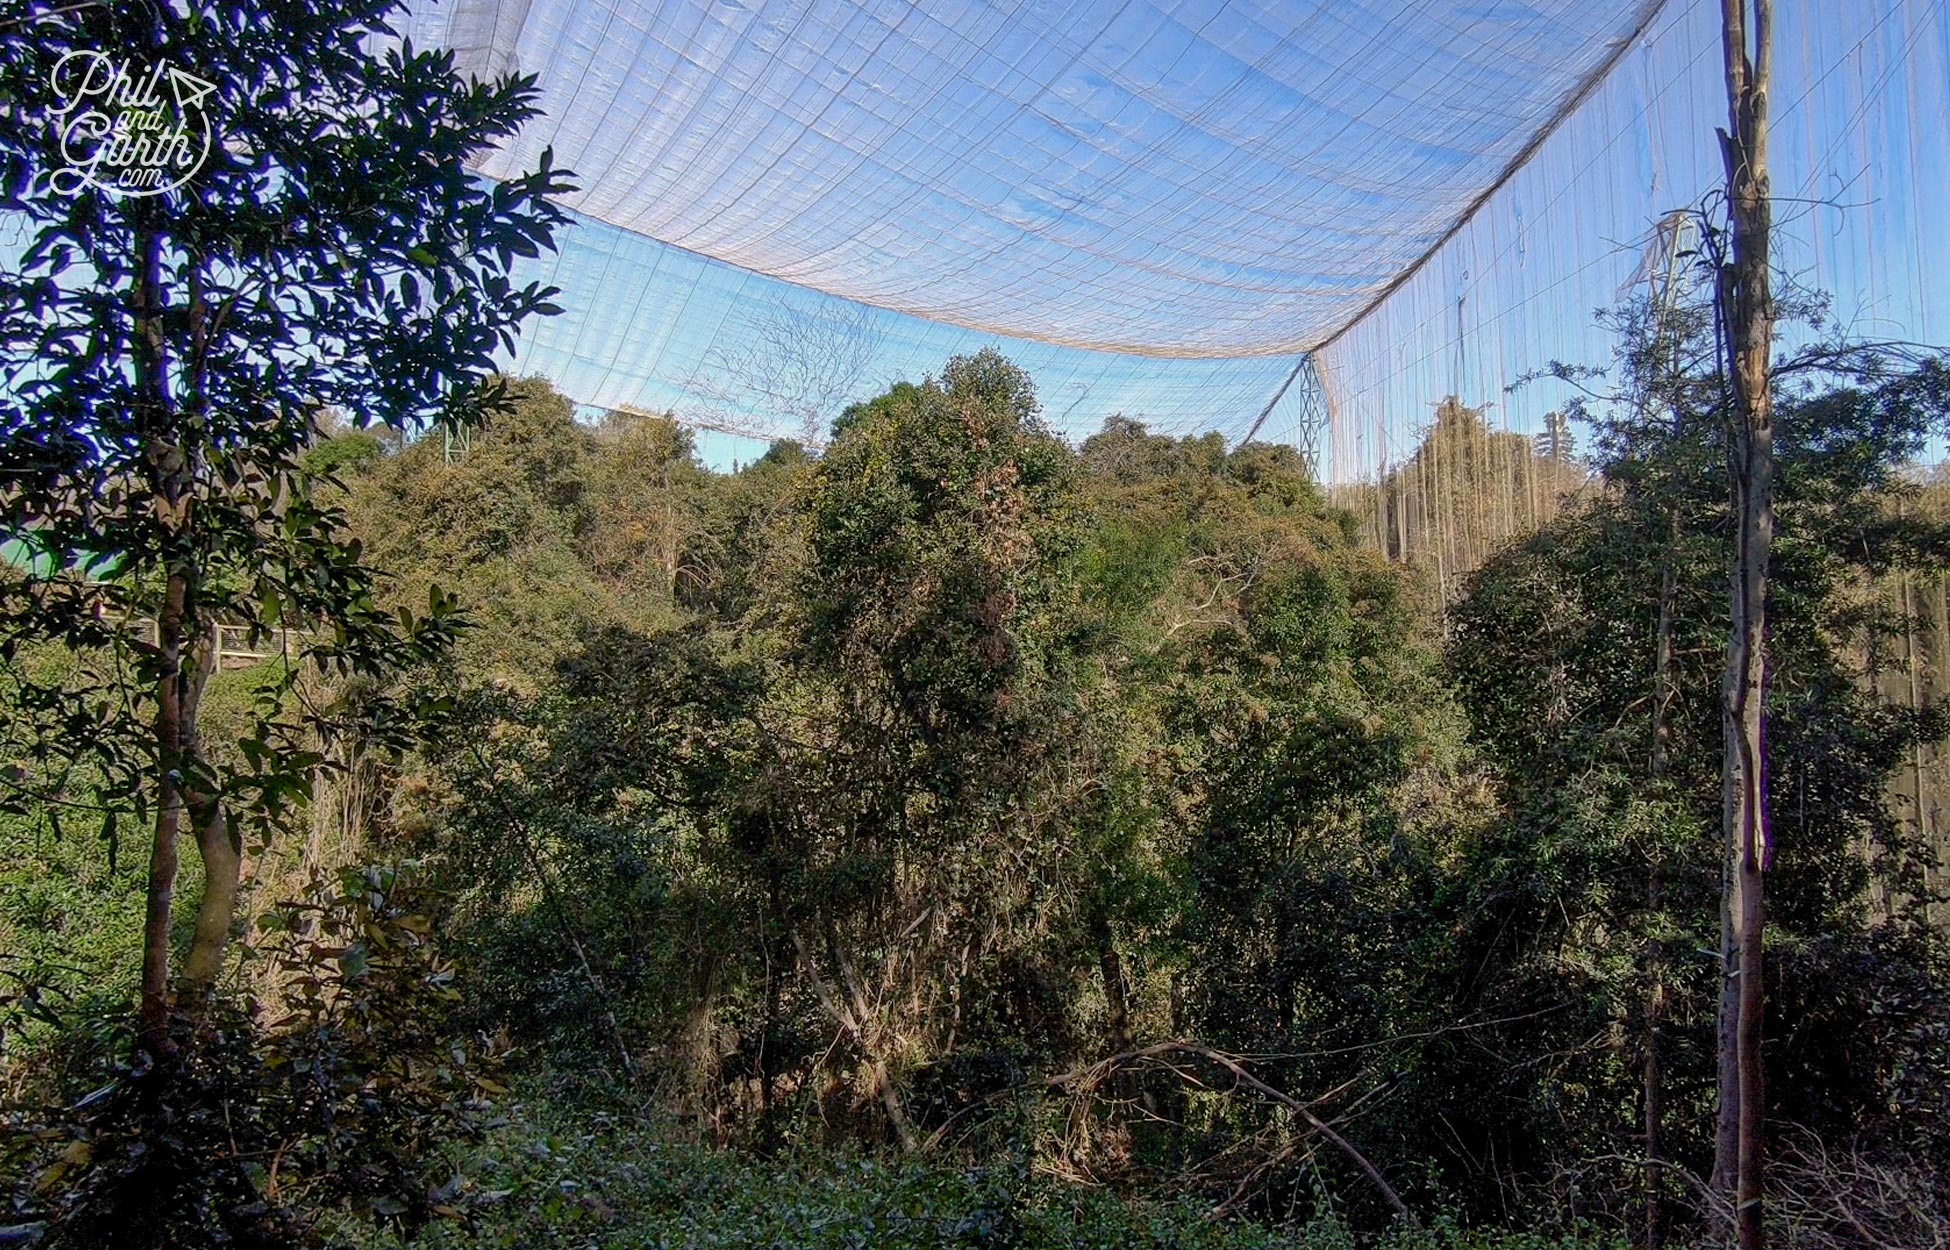 The Garden Route - The world's largest aviary